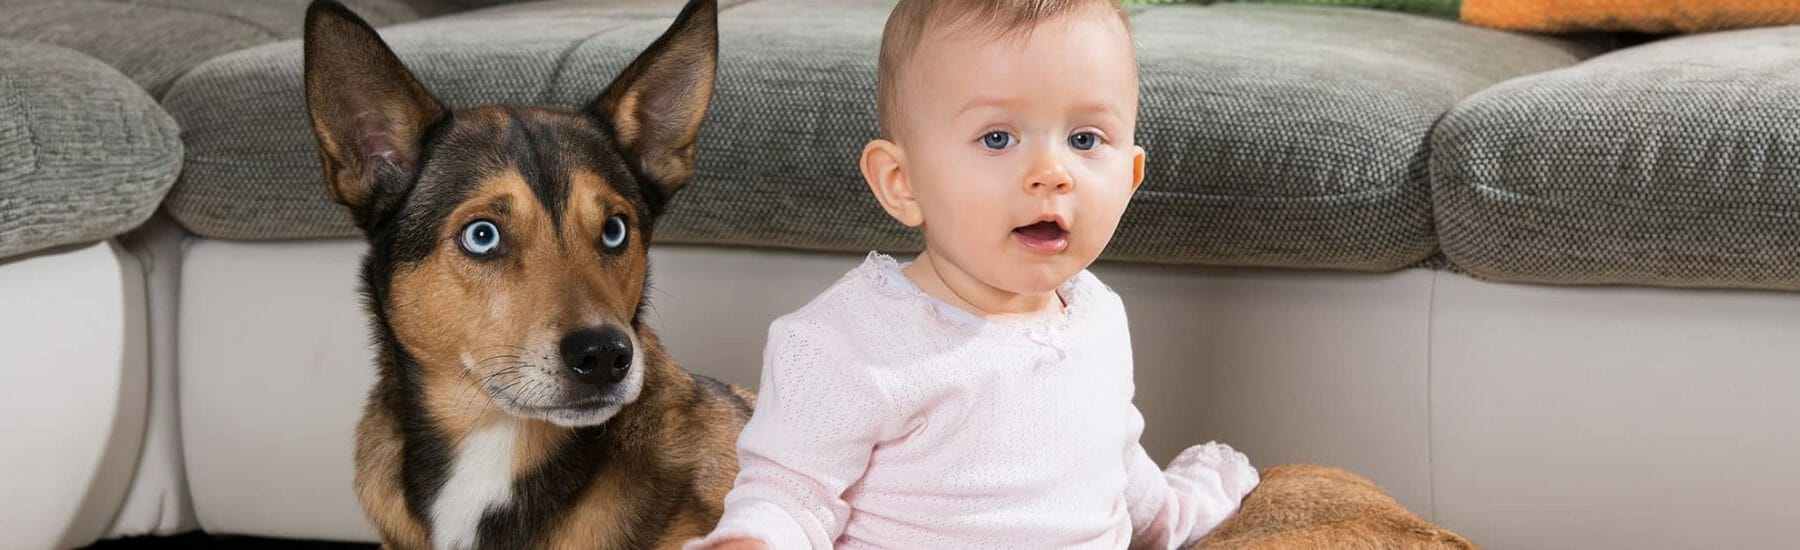 Dog with blue eyes sitting with baby